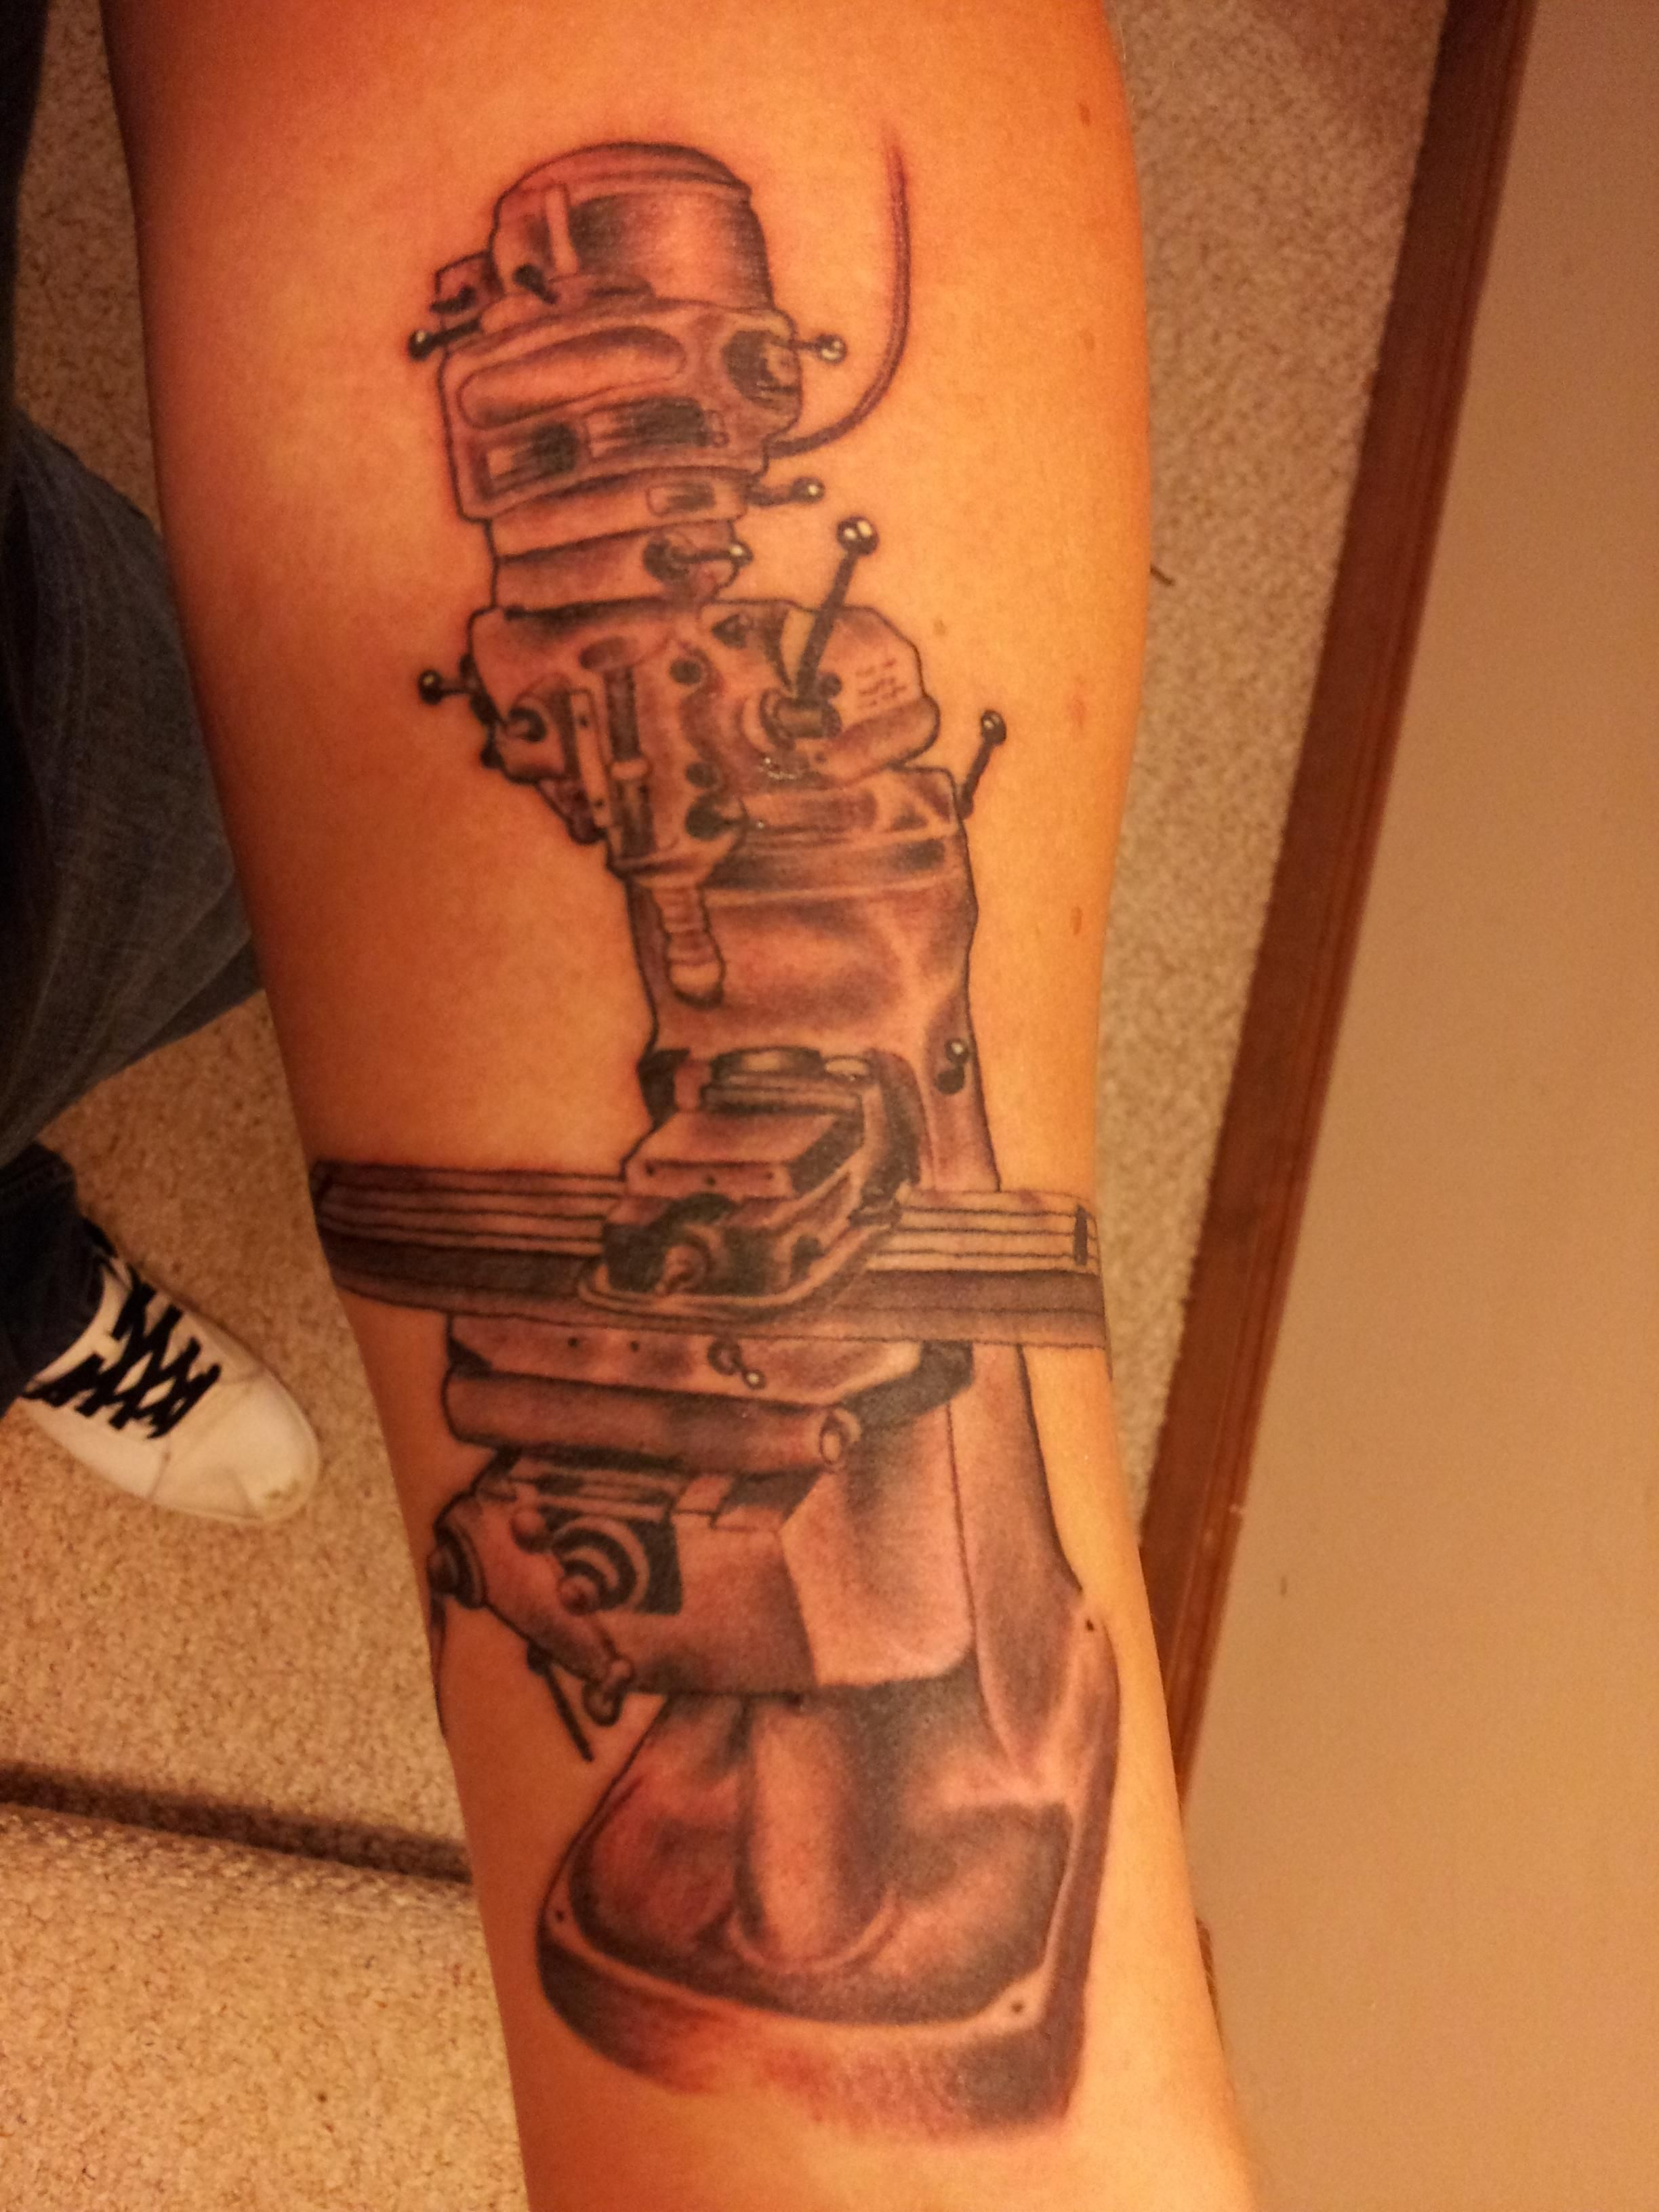 Welding Related Tattoos